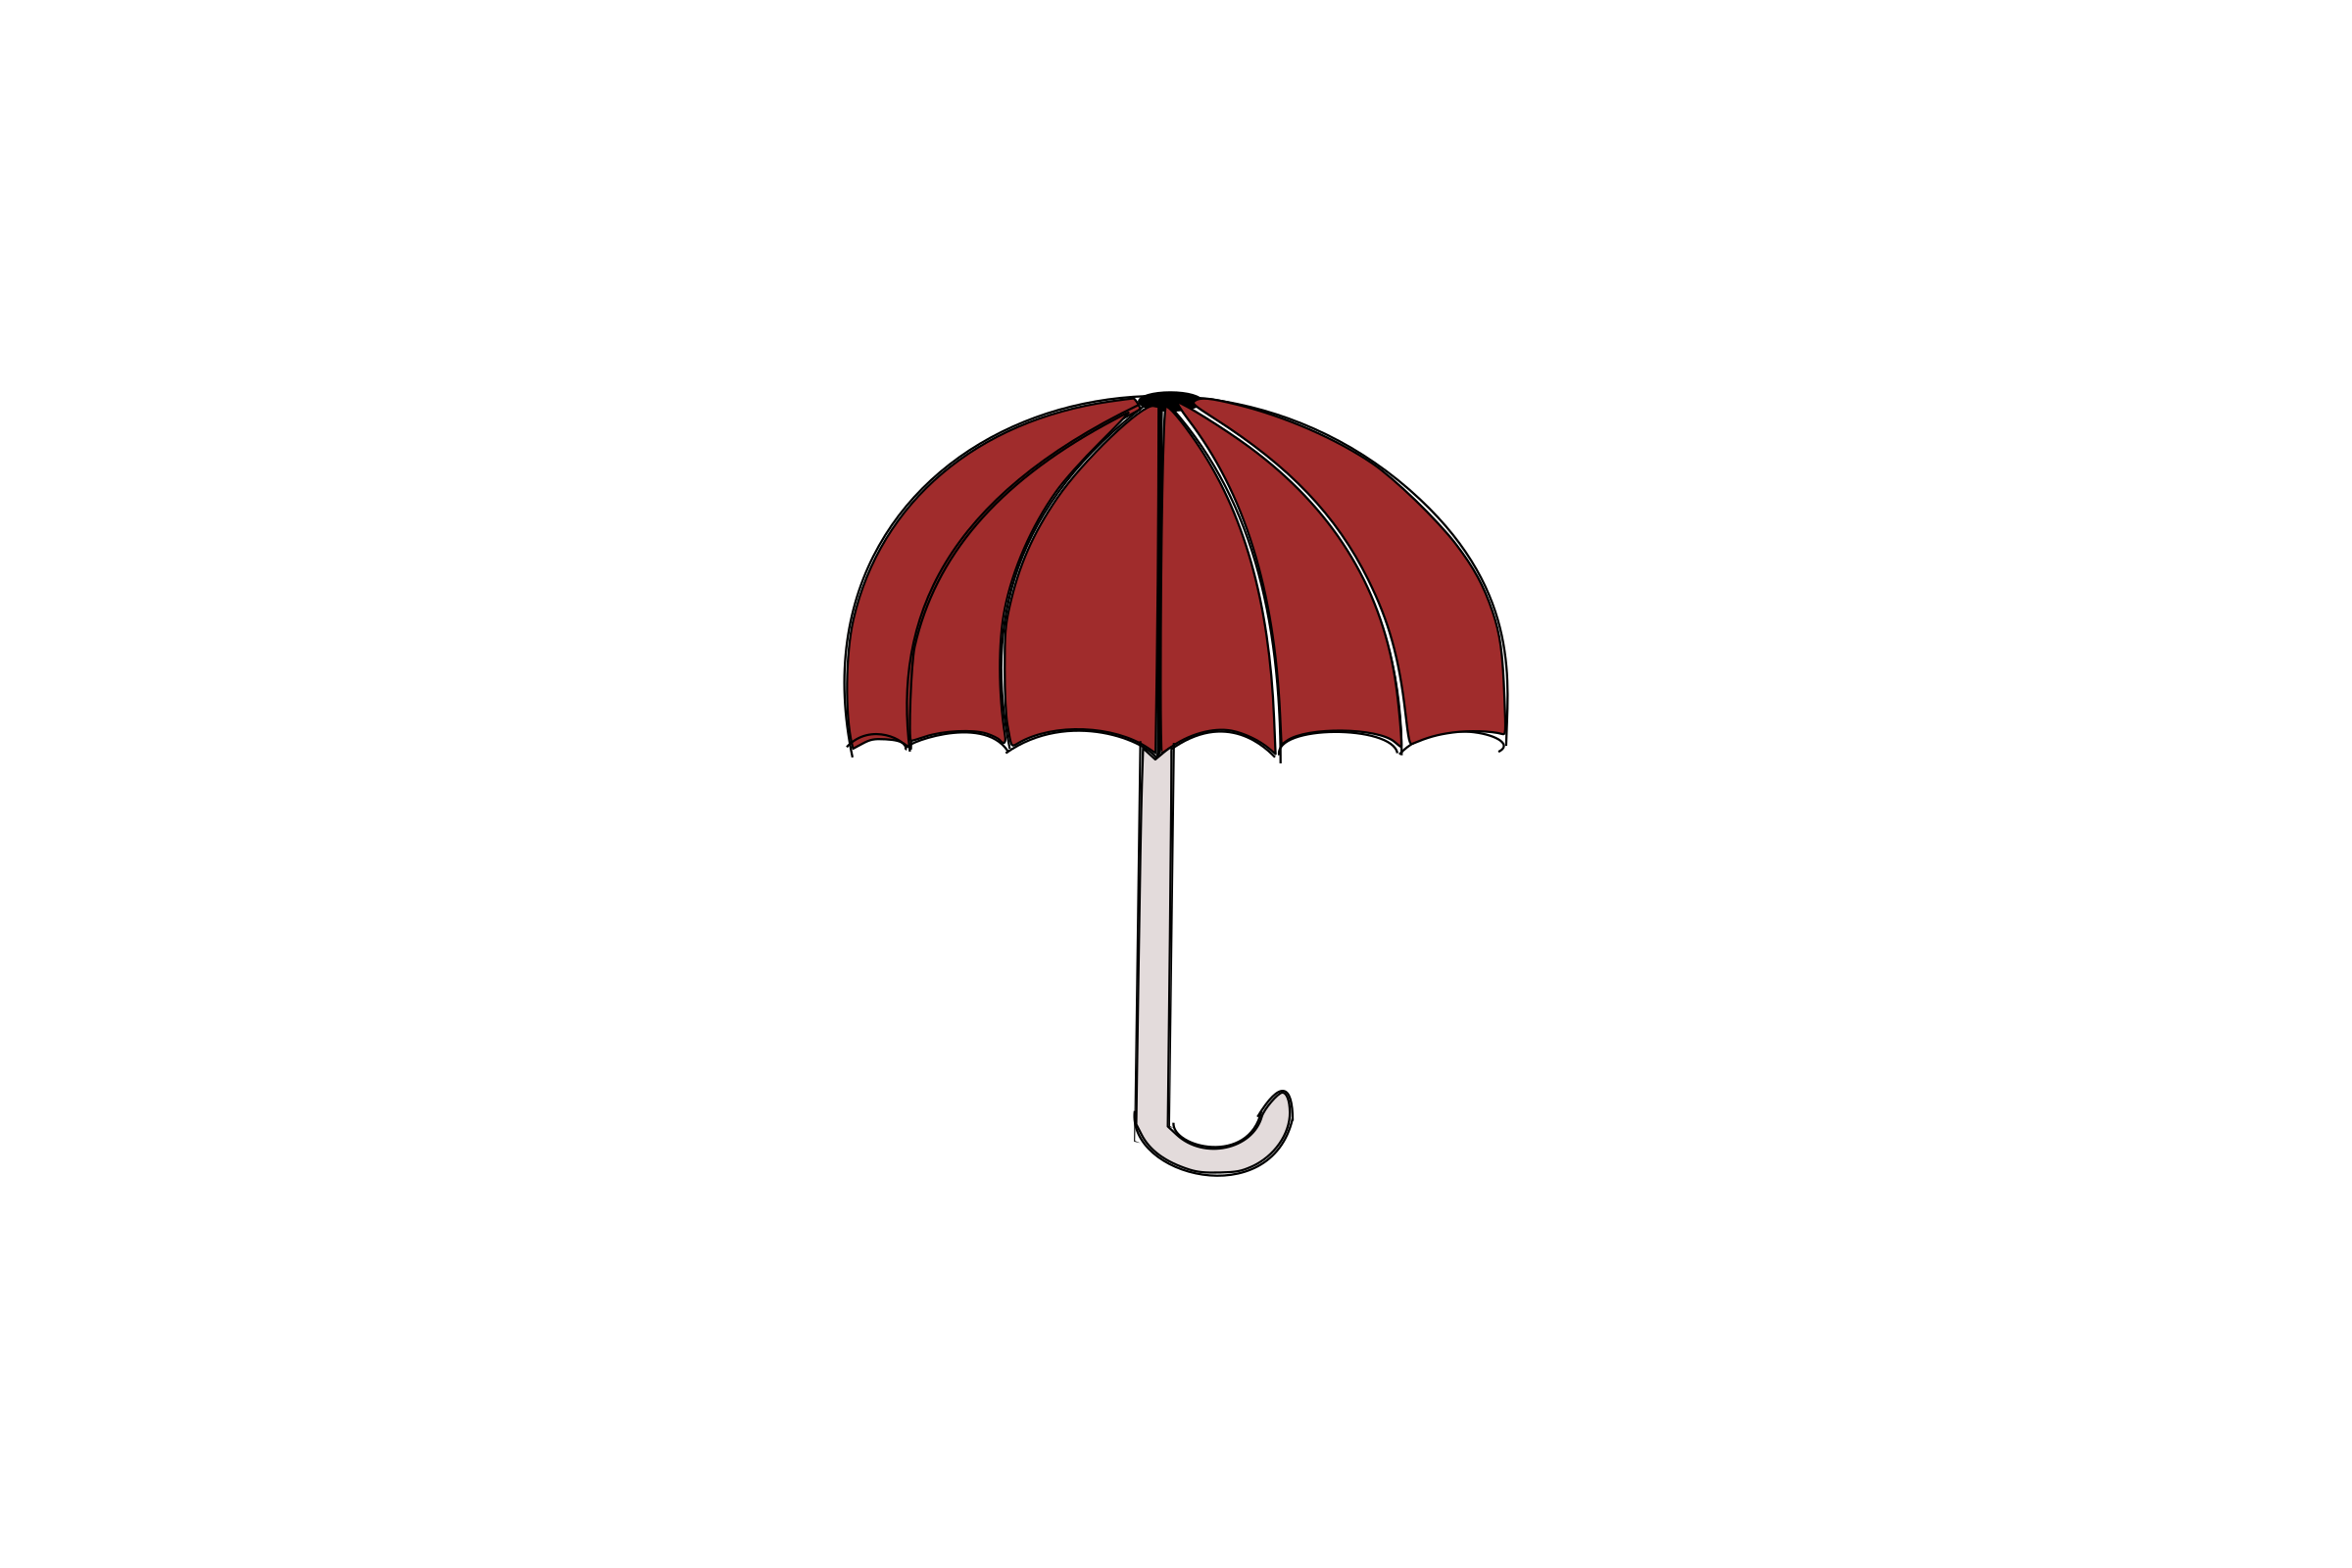 Umbrella by athithya